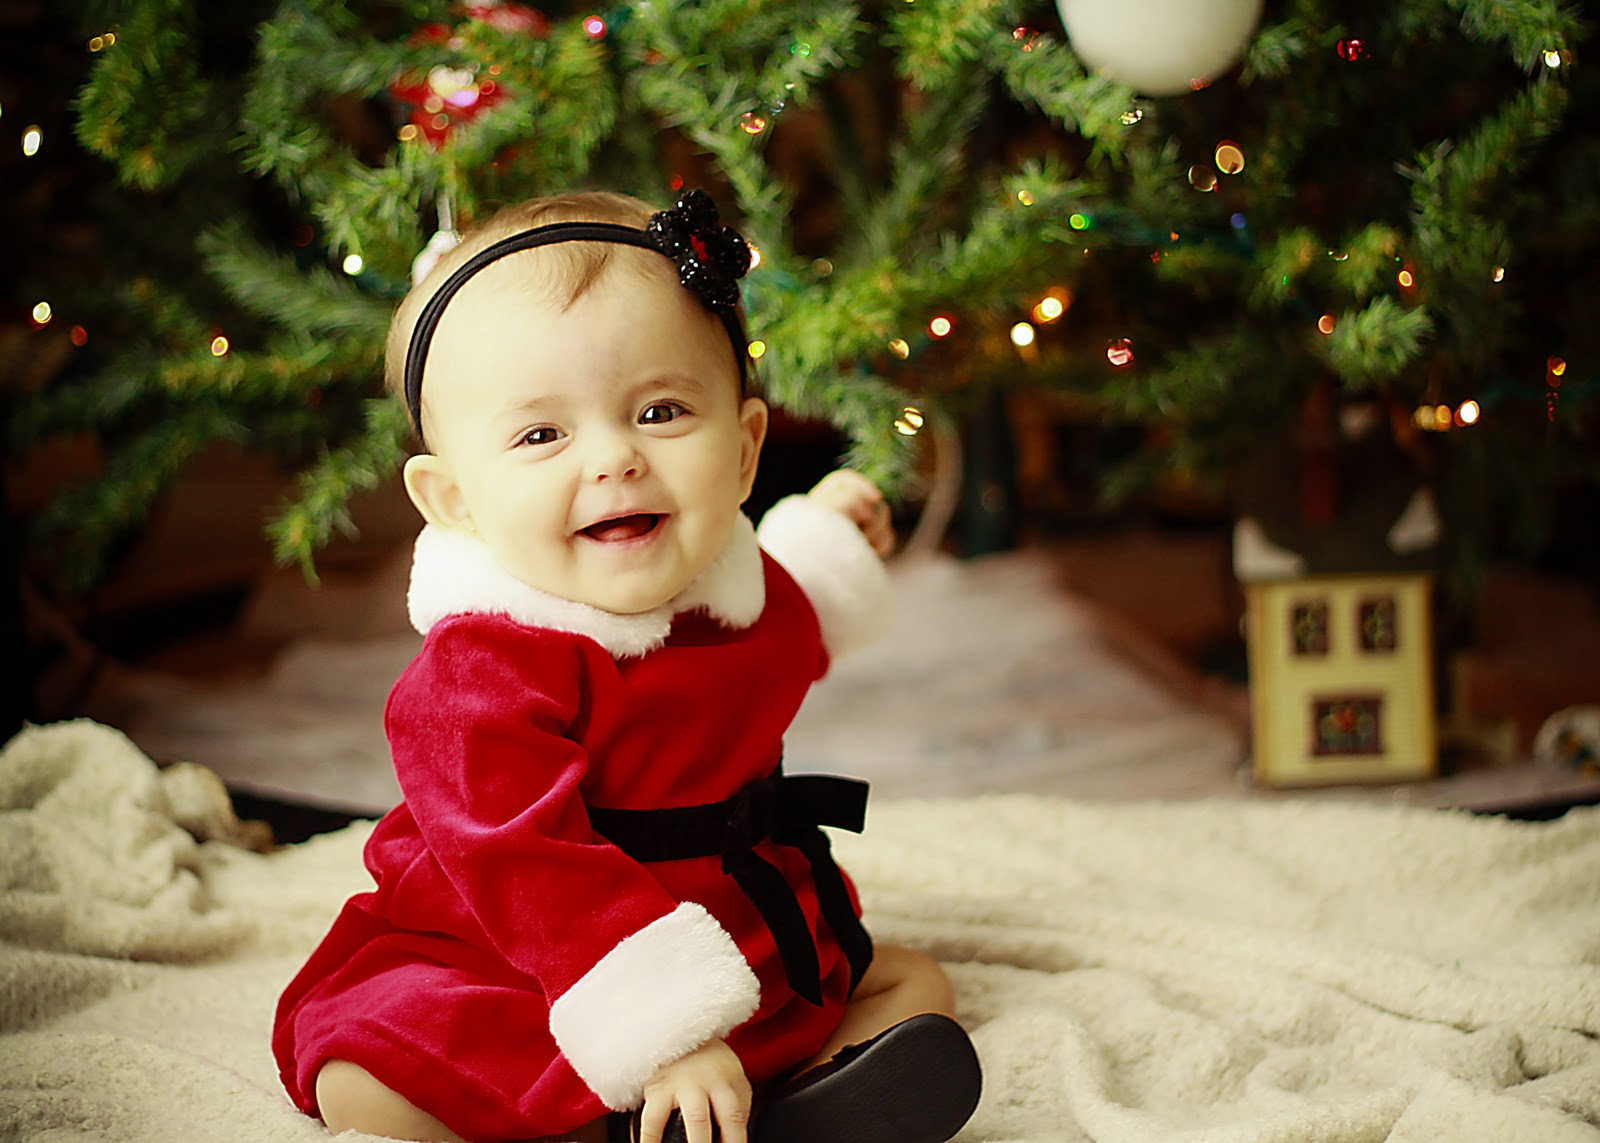 Cute Laughing Baby Wallpapers: Meet The Cutest Christmas Babies Who Can Be On Your